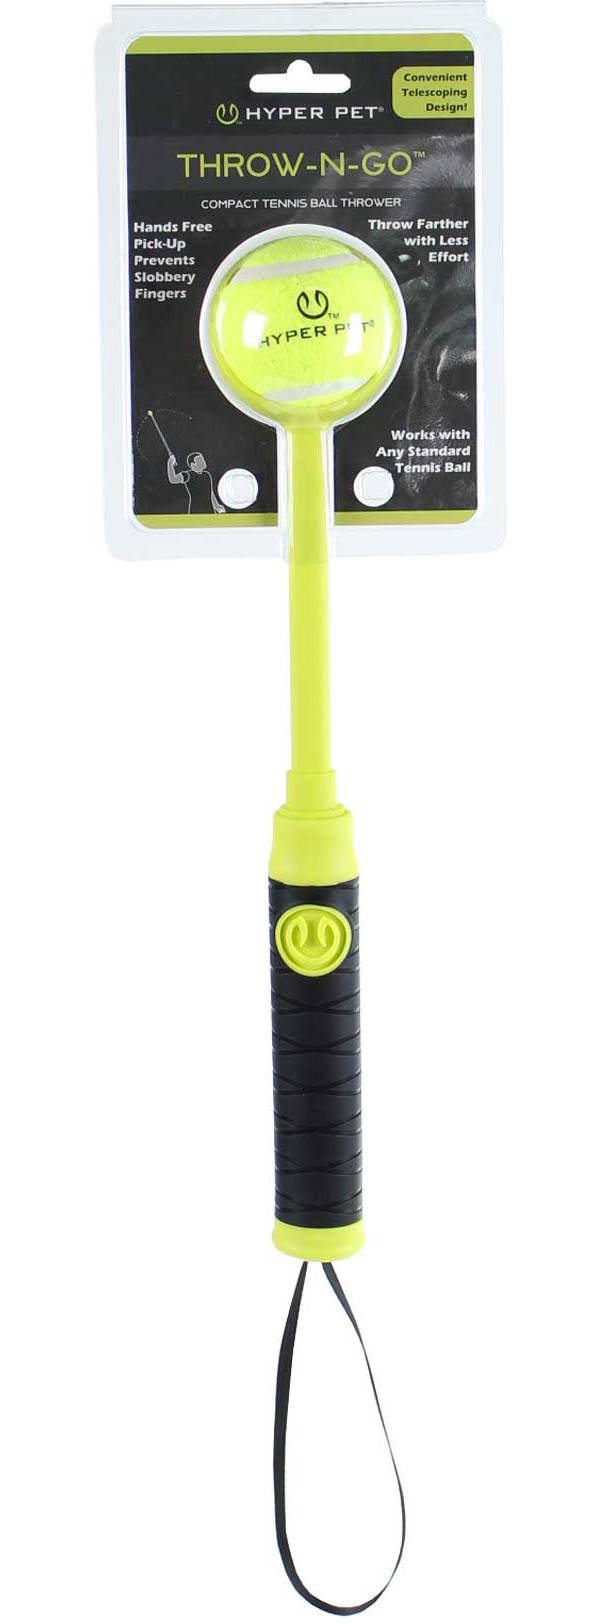 Hyper Pet Throw-N-Go Collapsible Ball Thrower product image